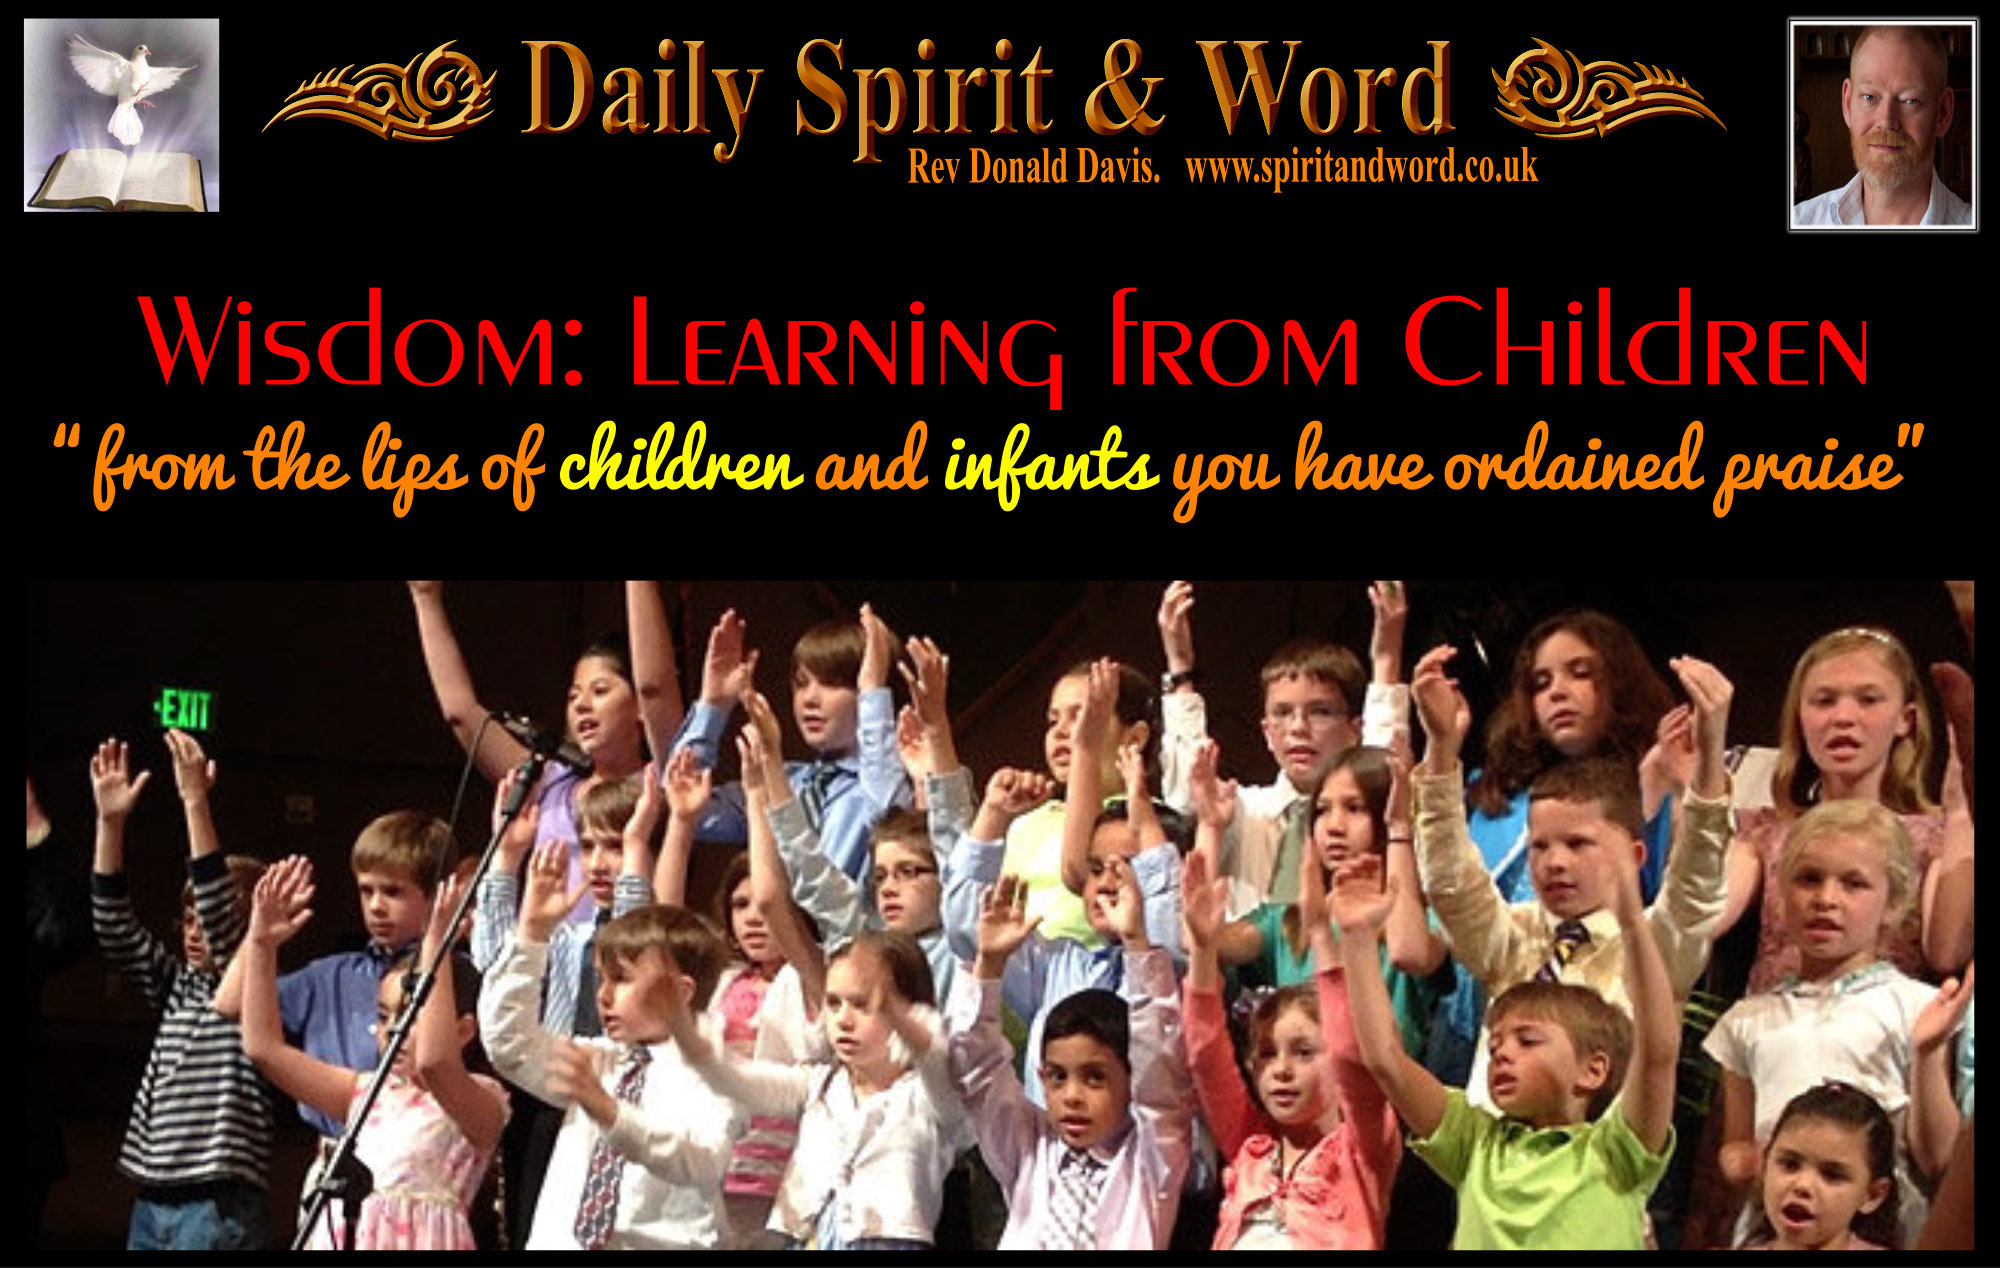 Wisdom: from children and infants